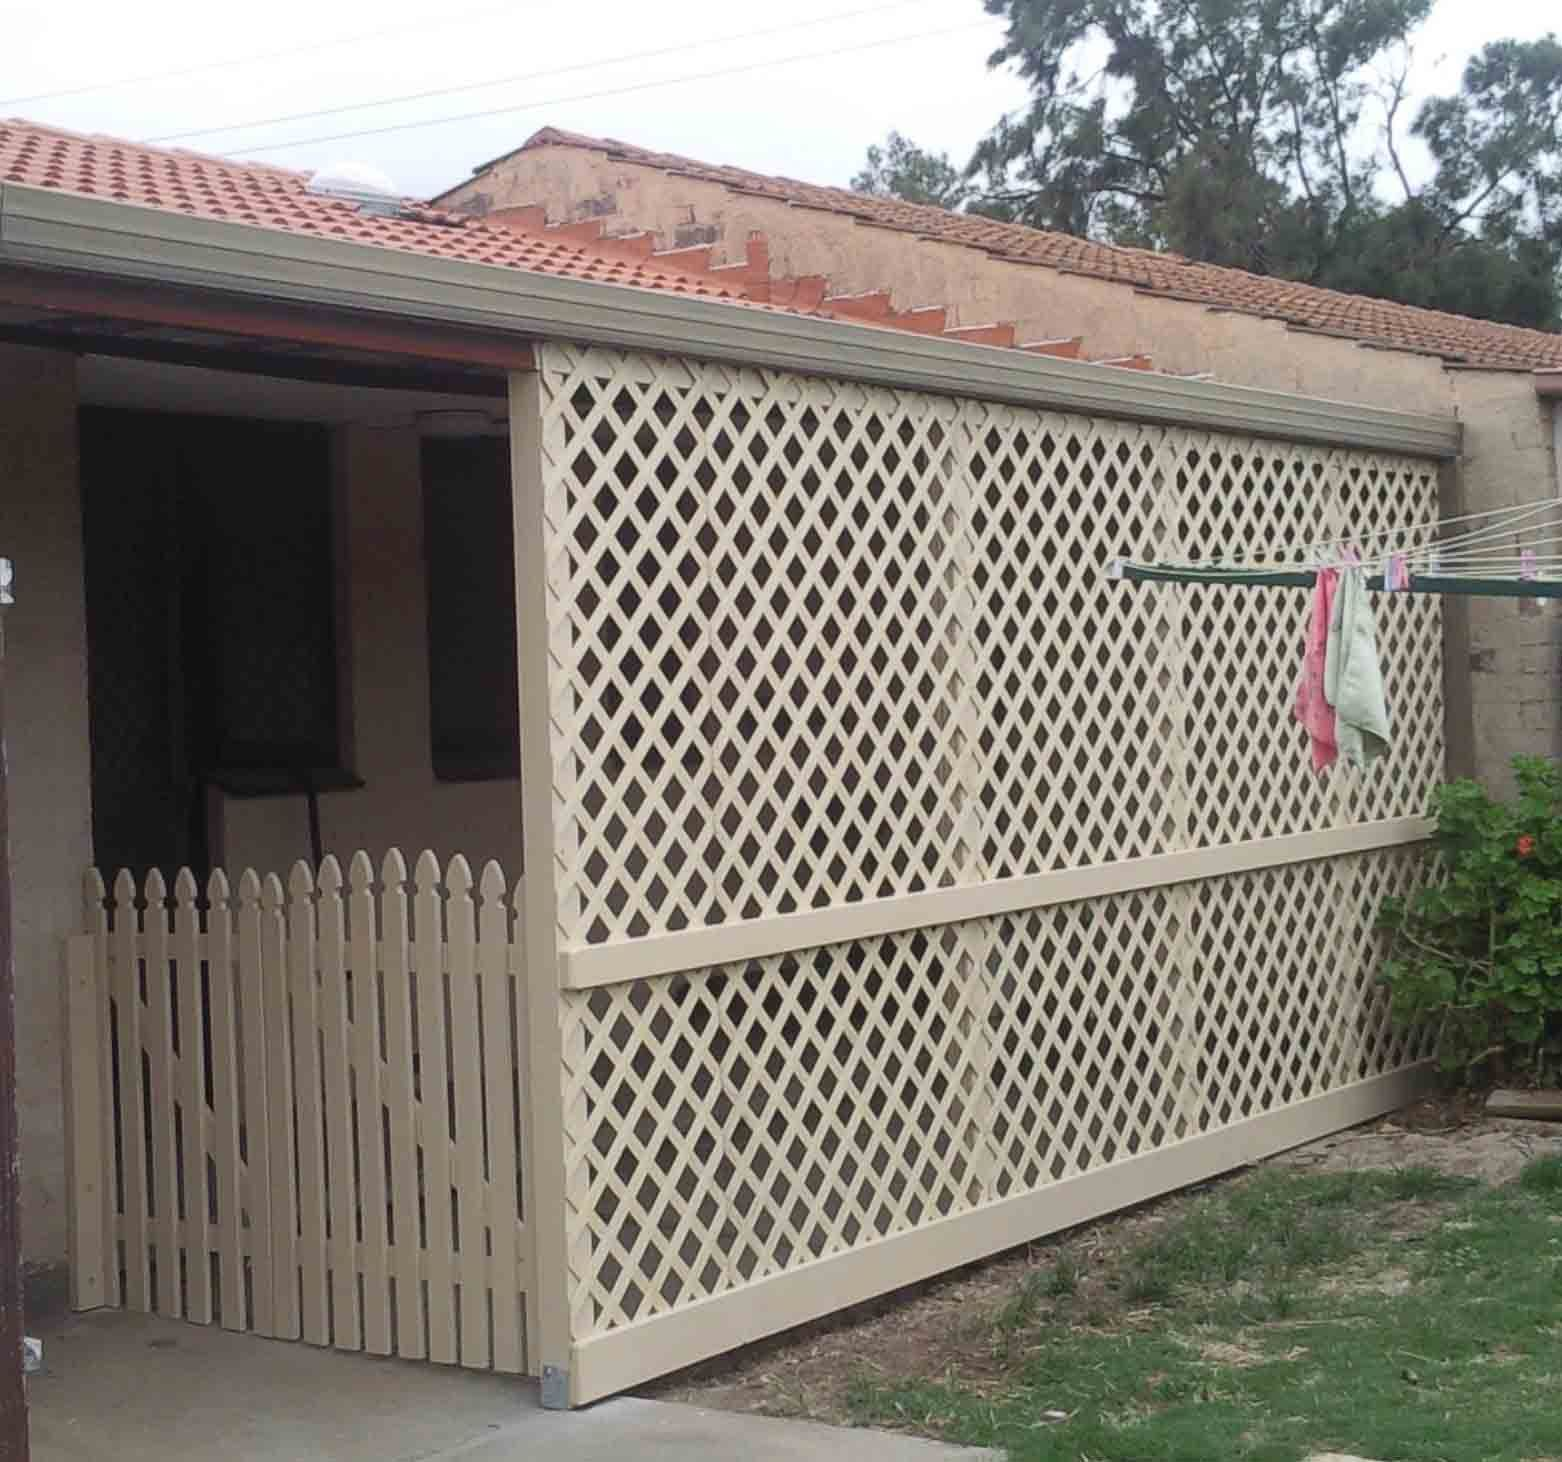 Lattice fence ideas cutting vinyl fencing pvc lattice for Outdoor privacy fence screen